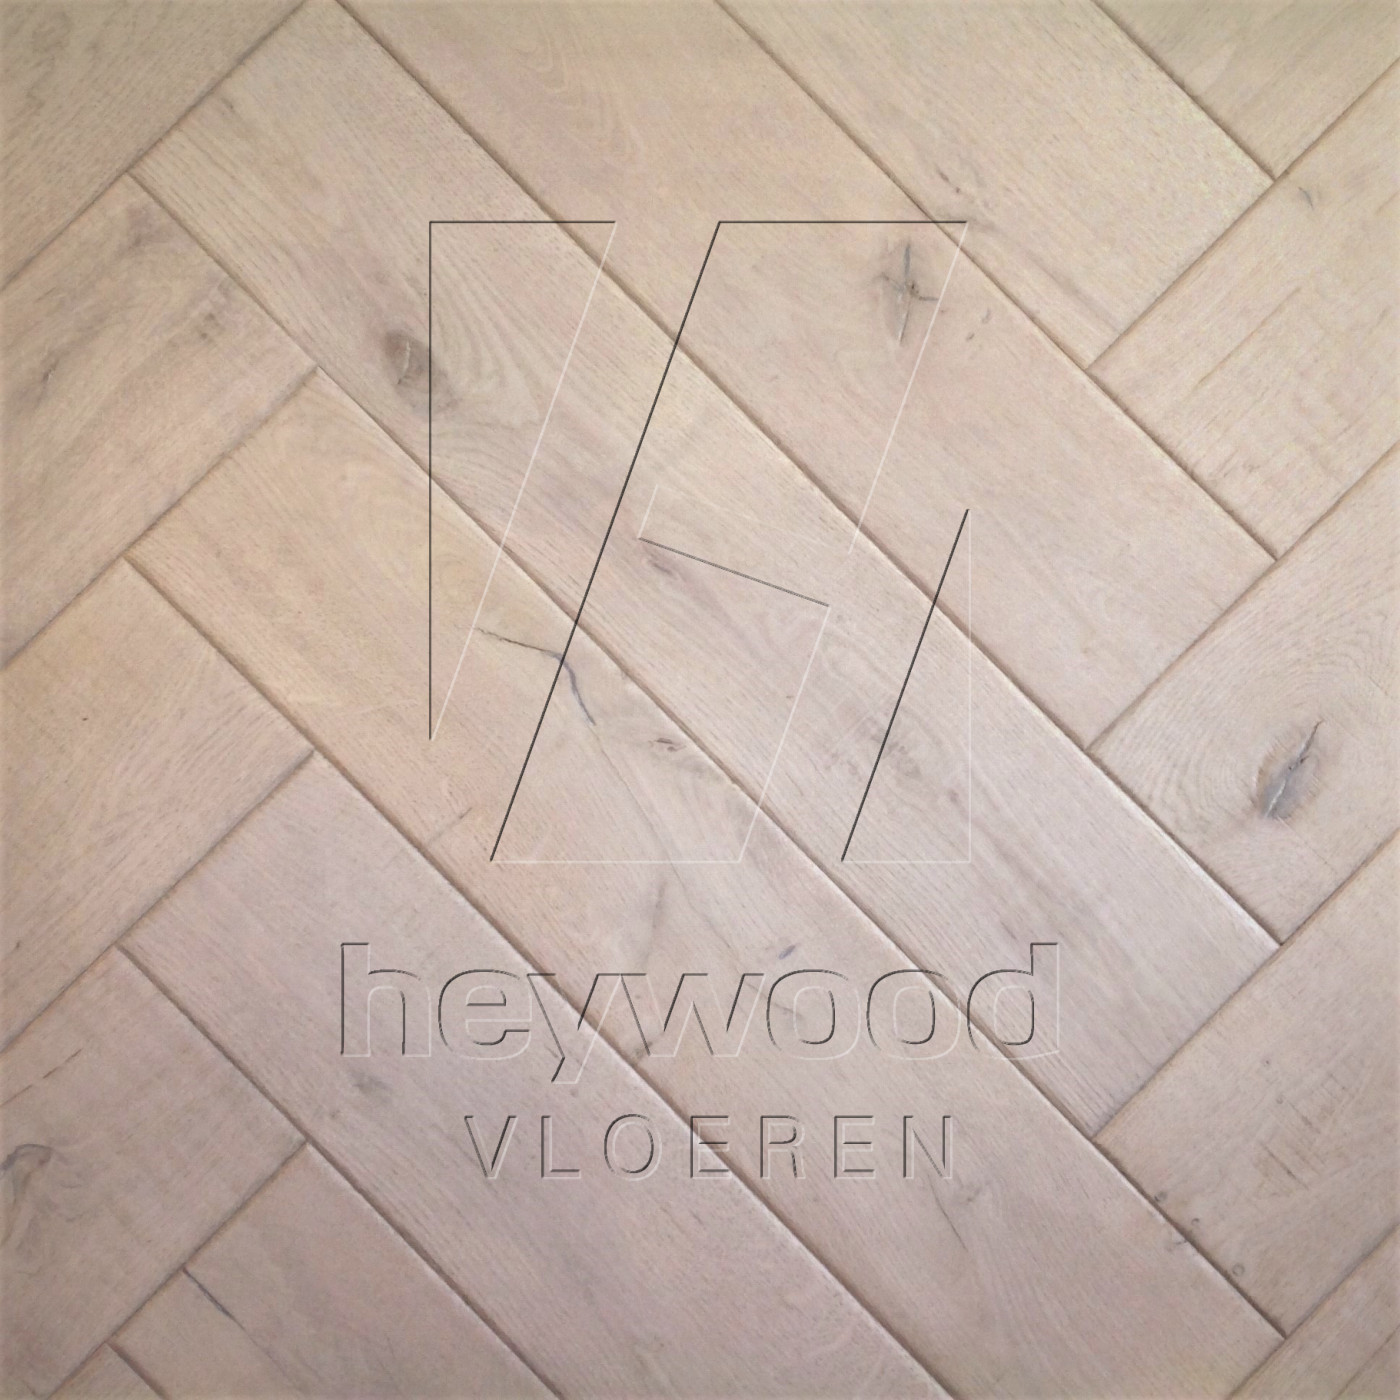 Shrunk Herringbone 'Yosemite' in Herringbone of Pattern & Panel Floors